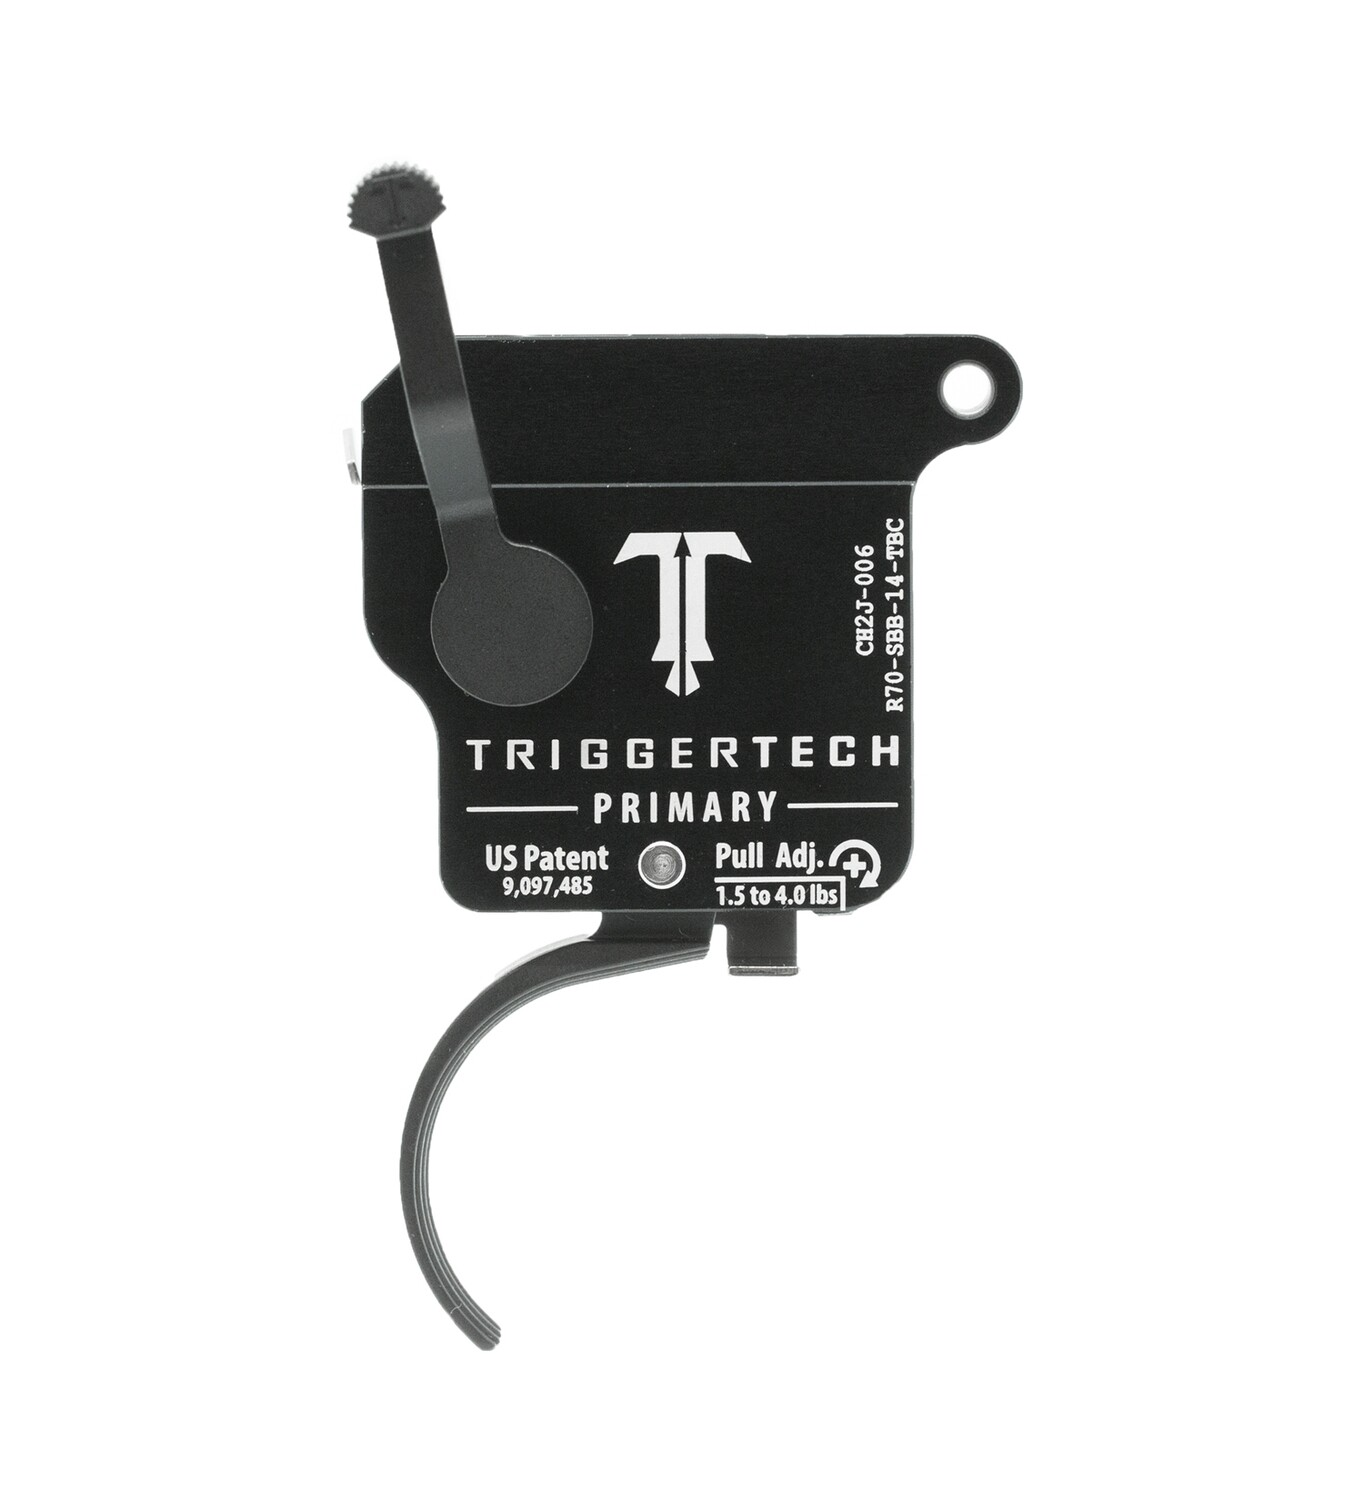 TriggerTech Primary Curved PVD 1.5-4lb Trigger for Remington 700 and Clones